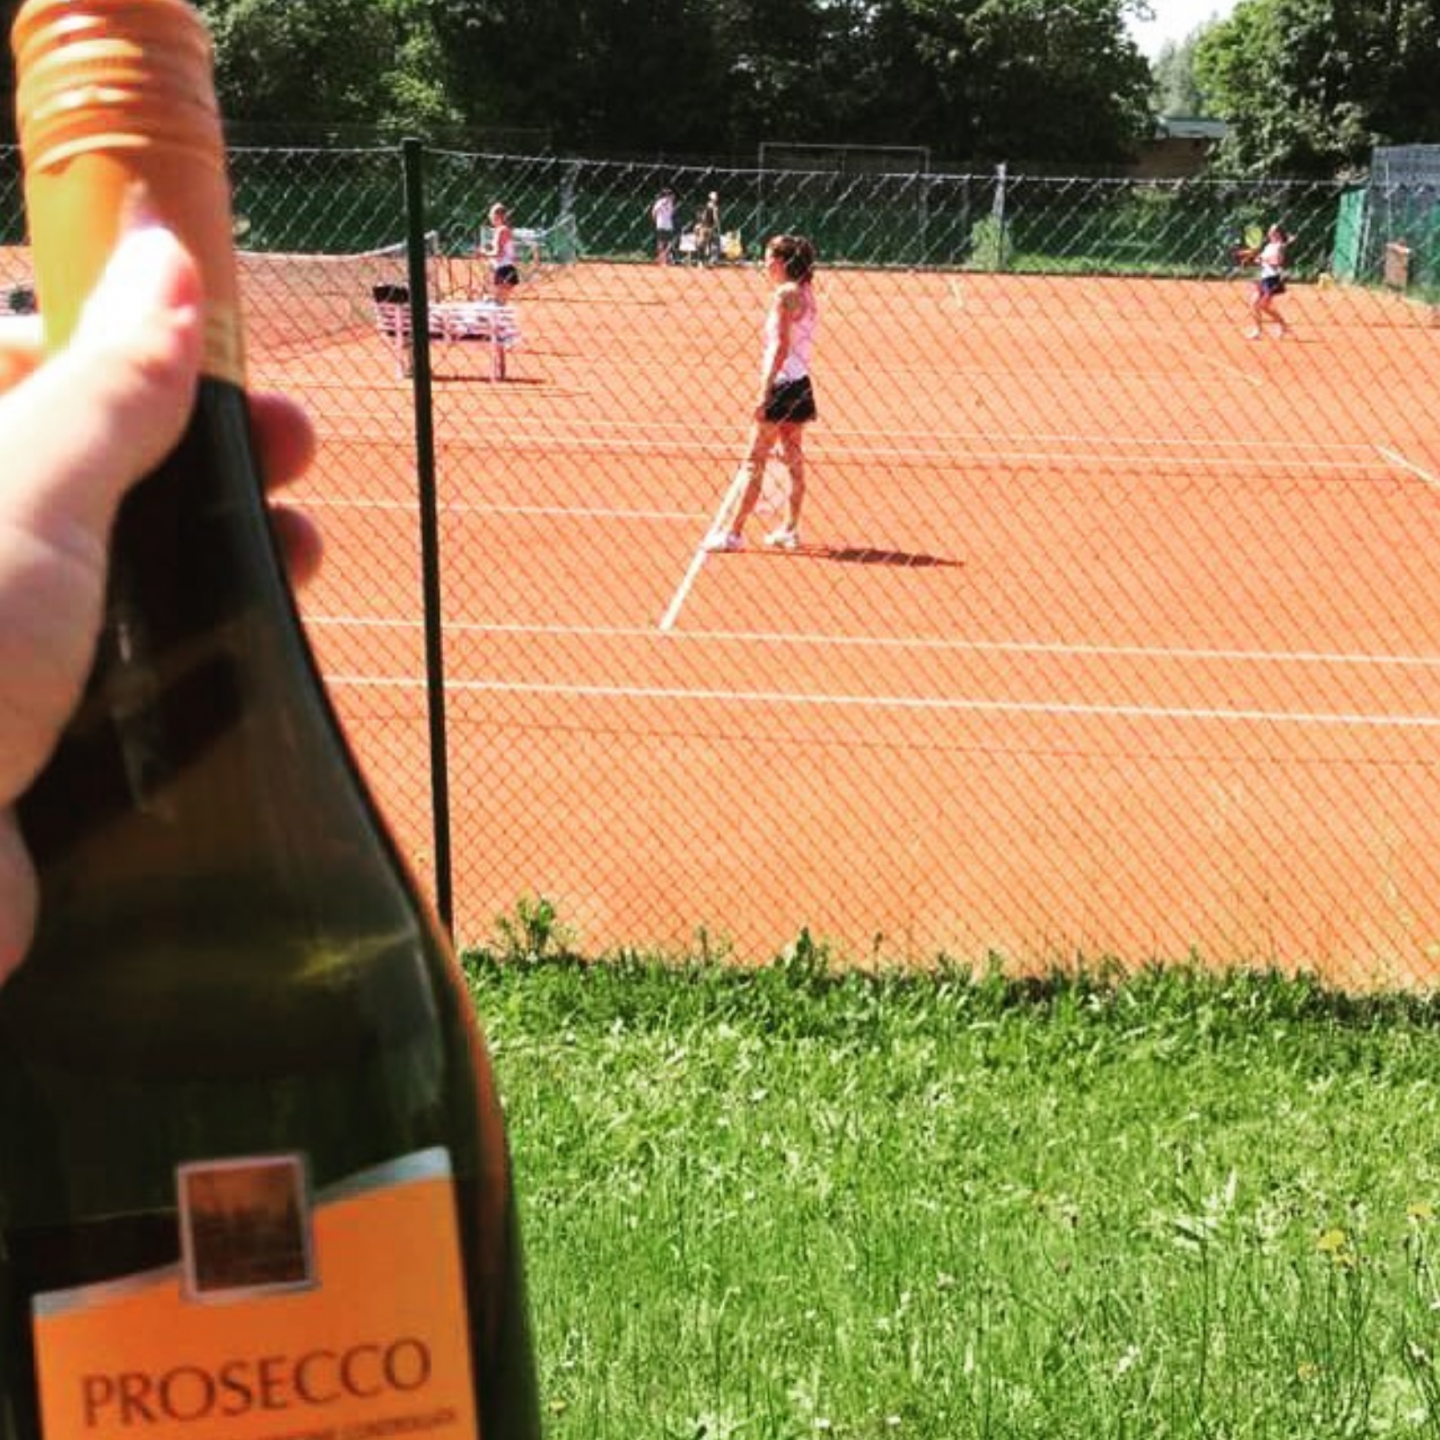 Prosecco in in front of a tennis court